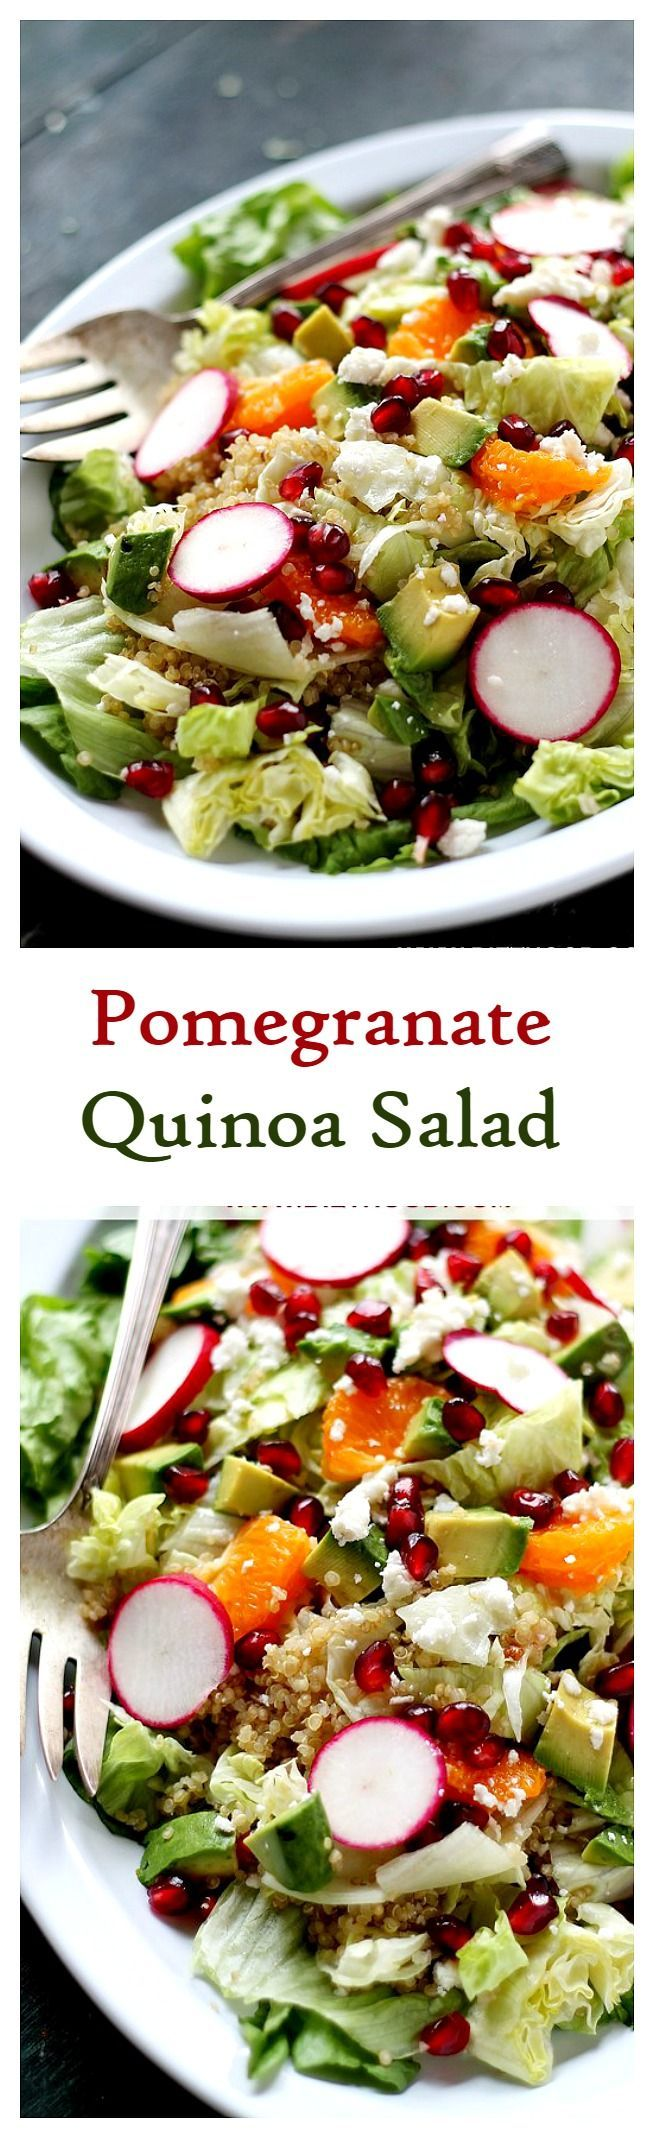 Beautiful and festive salad made with Quinoa, pomegranate seeds, tangerine segments, and topped with a delicious homemade Cranberry-Pomegranate Vinaigrette.